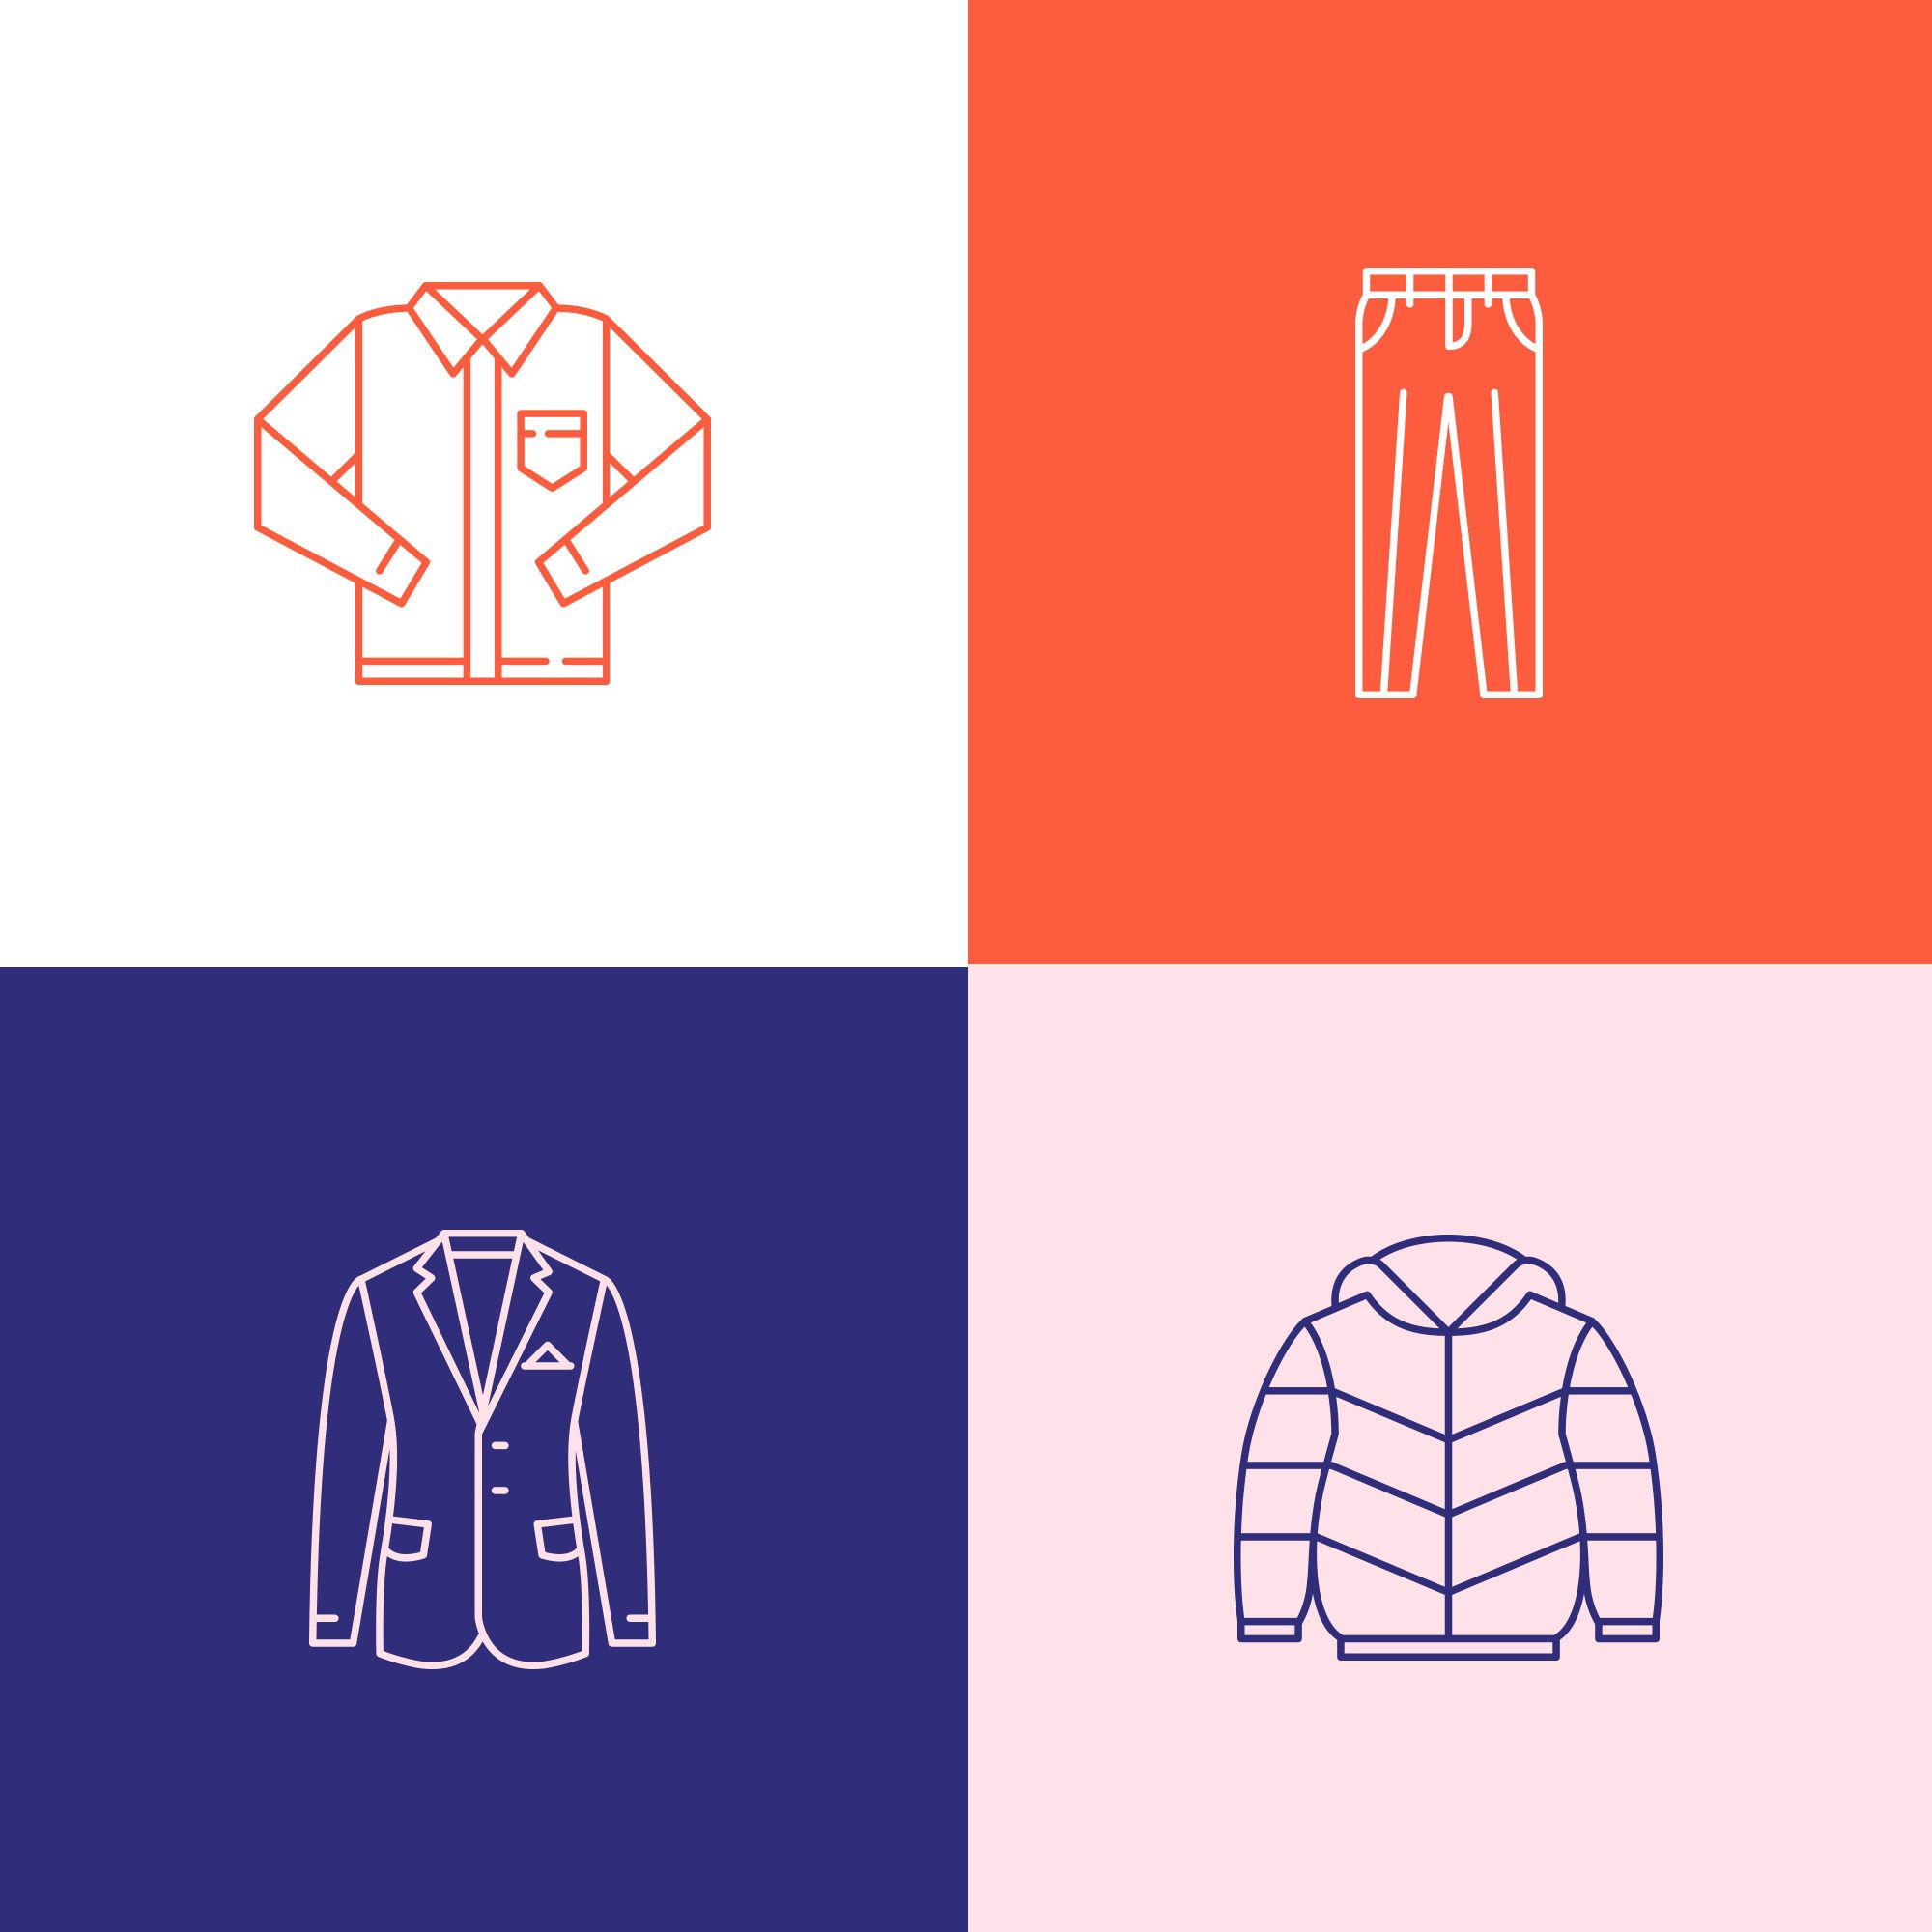 Online Clothes Shopping Icons Set Made By Istar Design Series Of 100 Vector Line Icons Created By Influence In 2020 Web Design Quotes Web Design Services Web Design